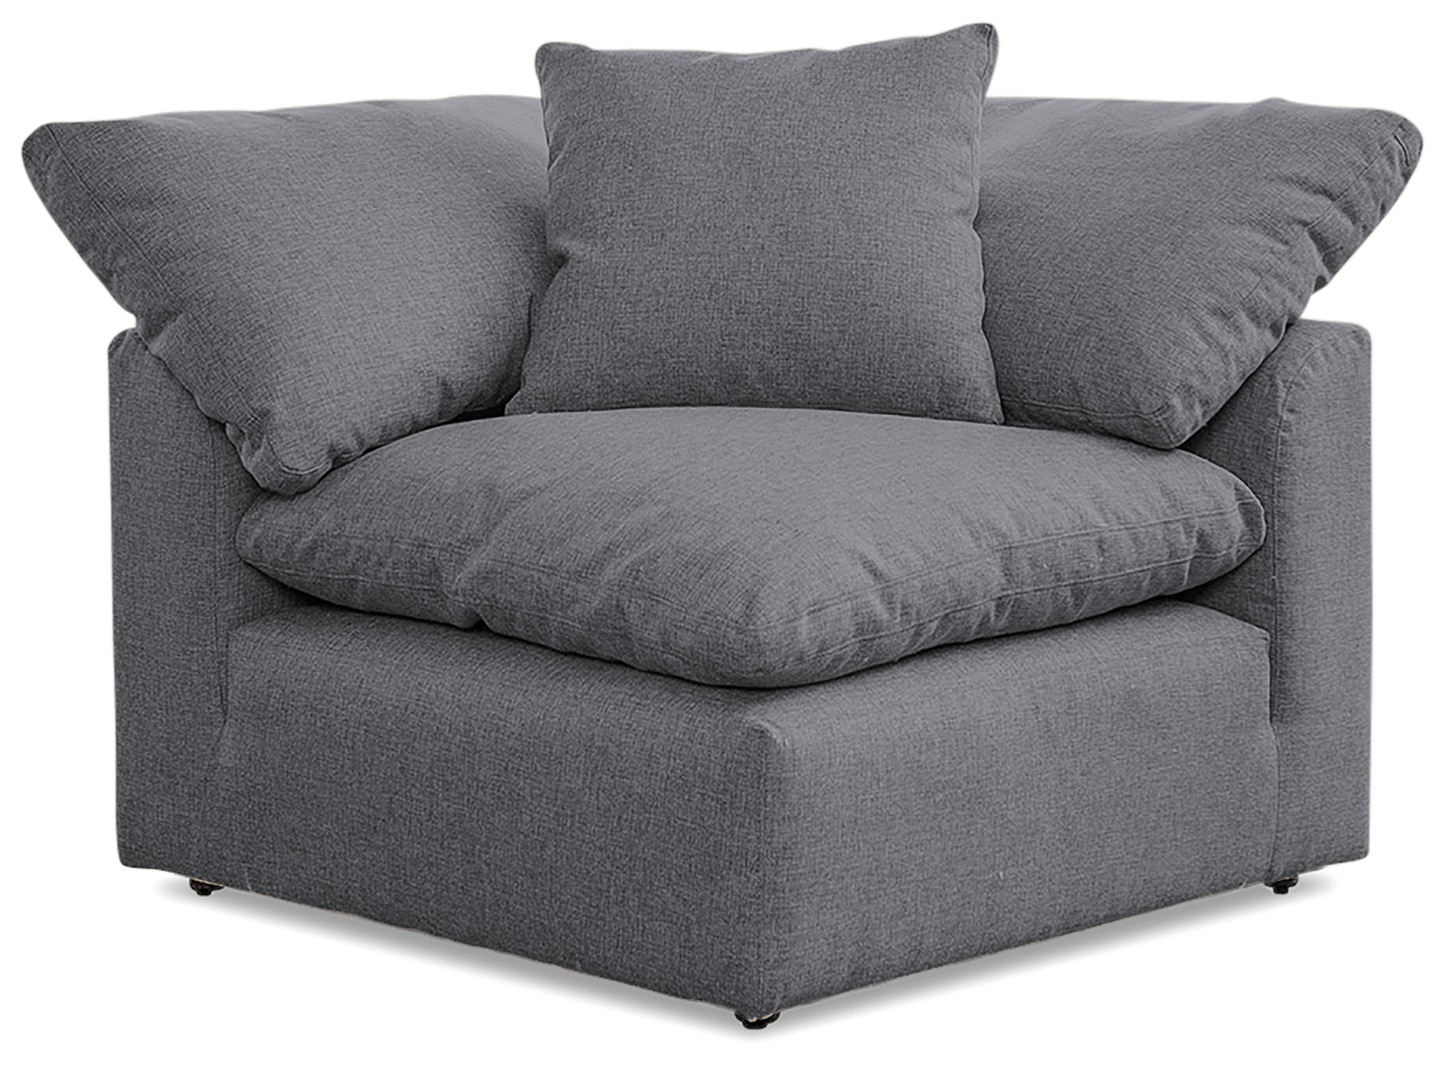 Bryant Sectional - 3pc (3 Corner Chairs) Essence Ash 4365